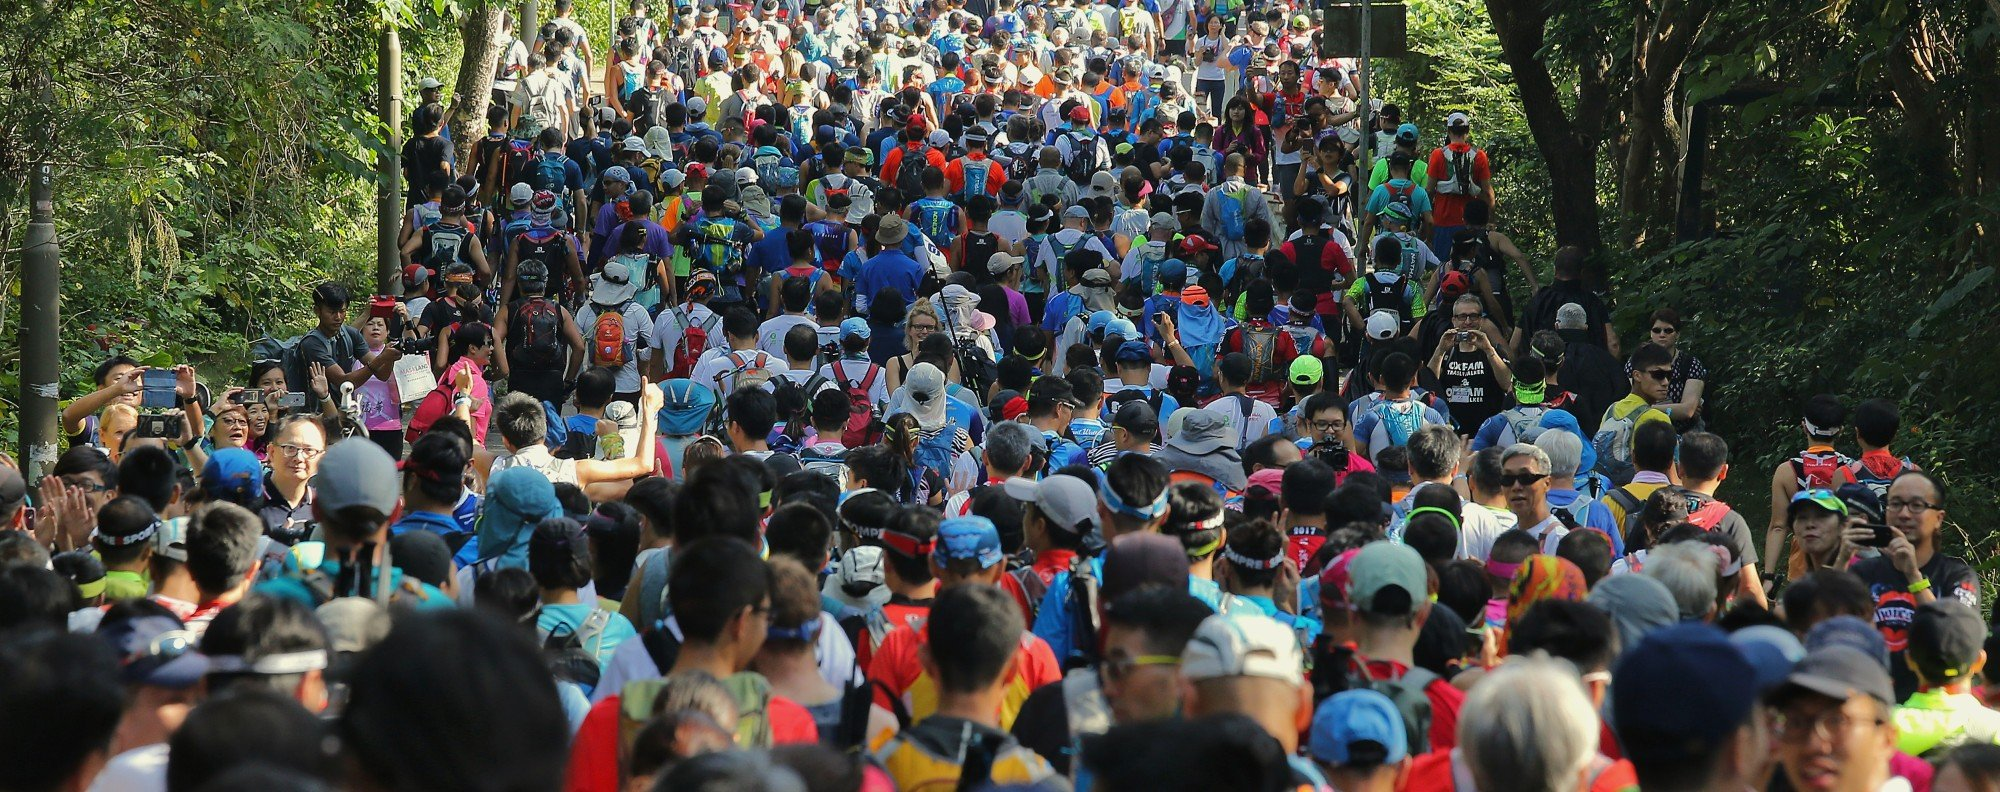 Oxfam Trailwalker is the oldest race in Hong Kong, but has become one of many in recent years. Photo: Dickson Lee